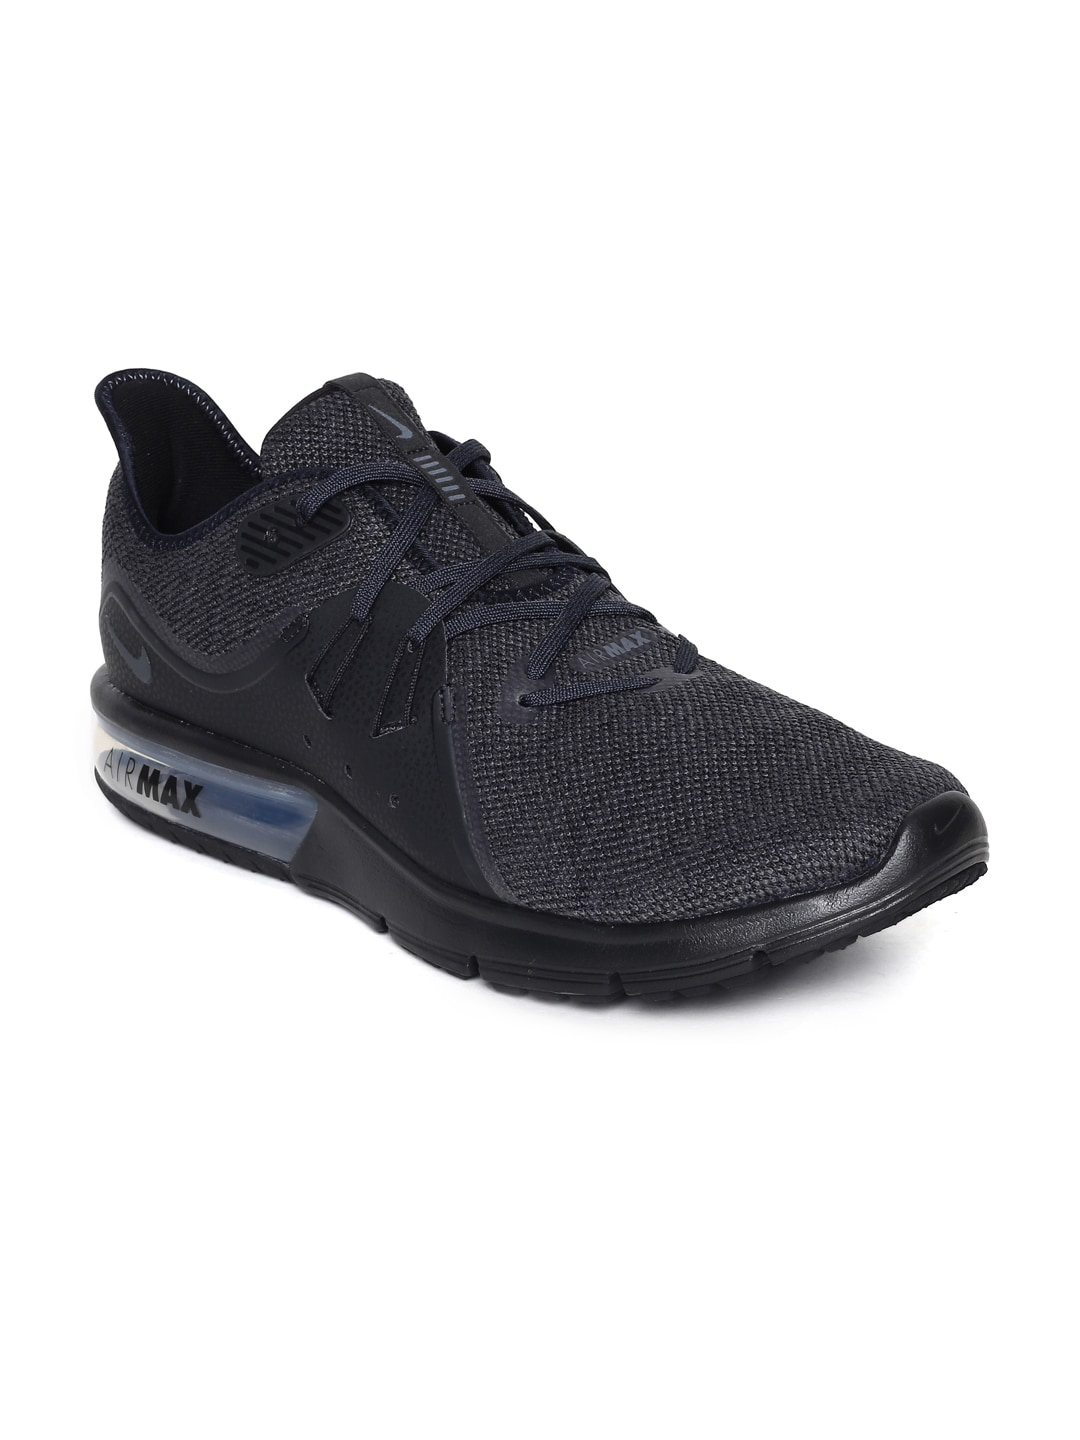 0629d092b2b591 Nike Air Max For Men Sports Shoes - Buy Nike Air Max For Men Sports Shoes  online in India